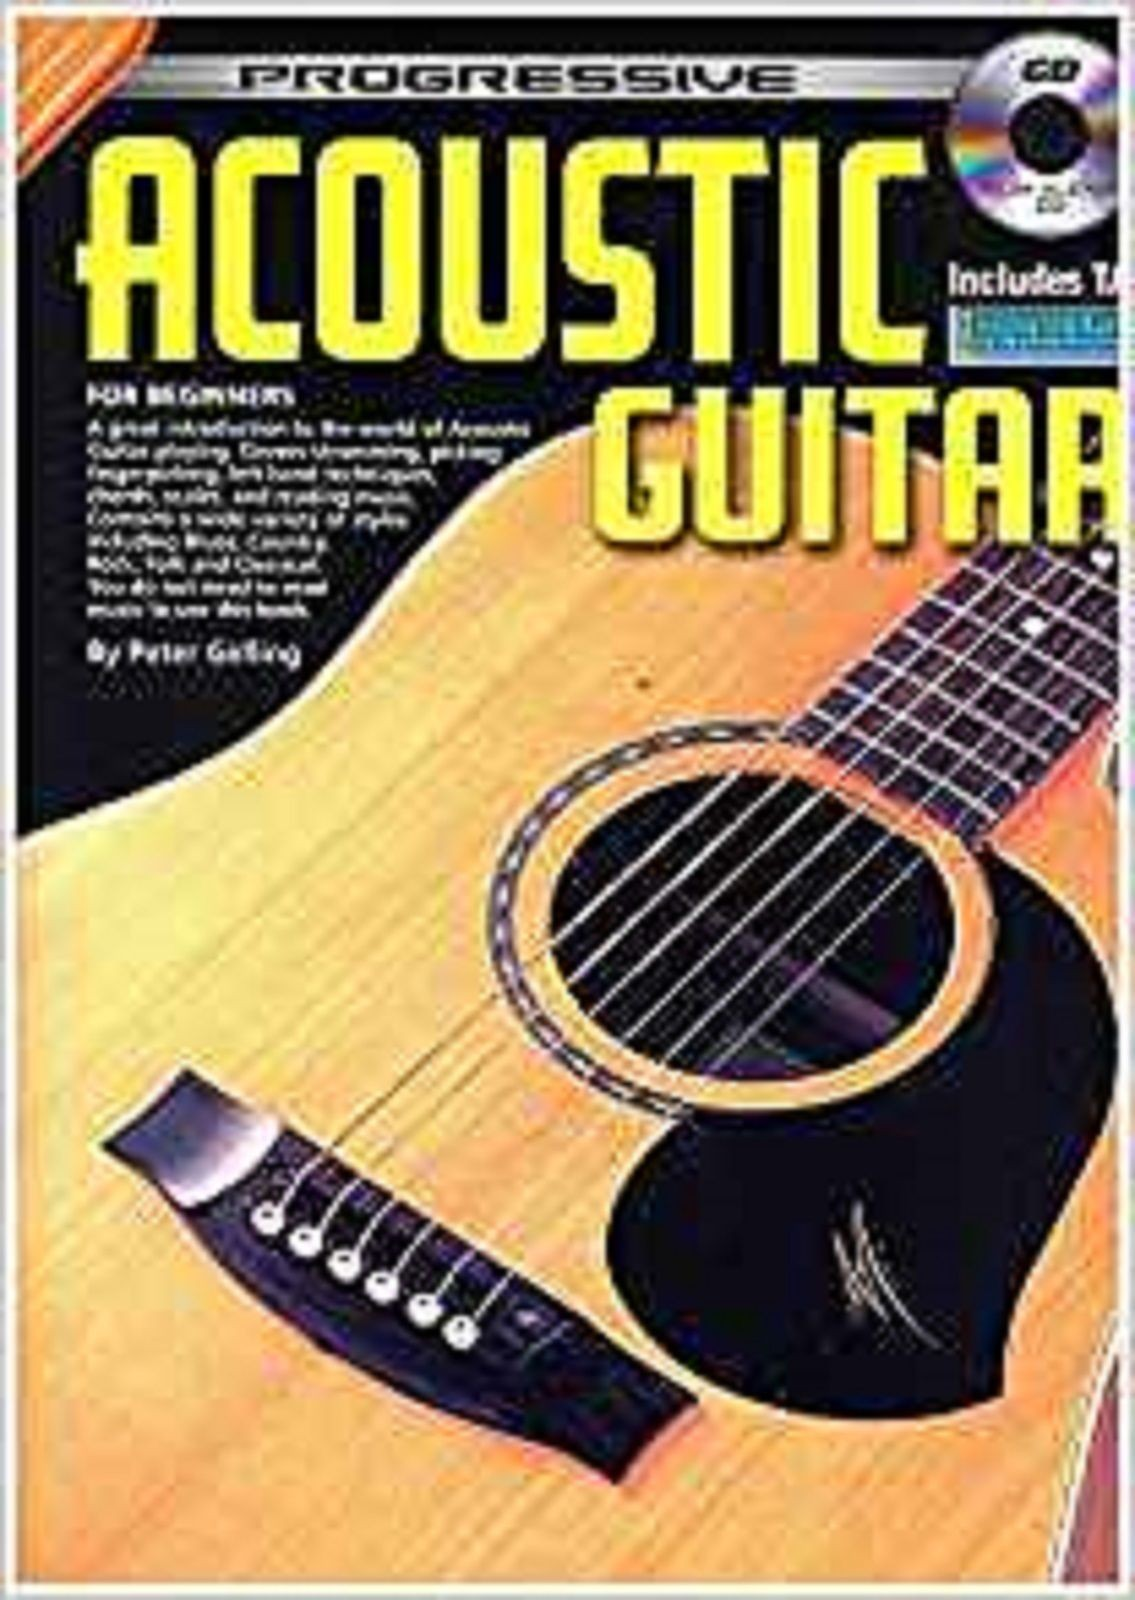 Progressive Acoustic Guitar For Beginners CD TAB Tutor Method Book Gelling S169